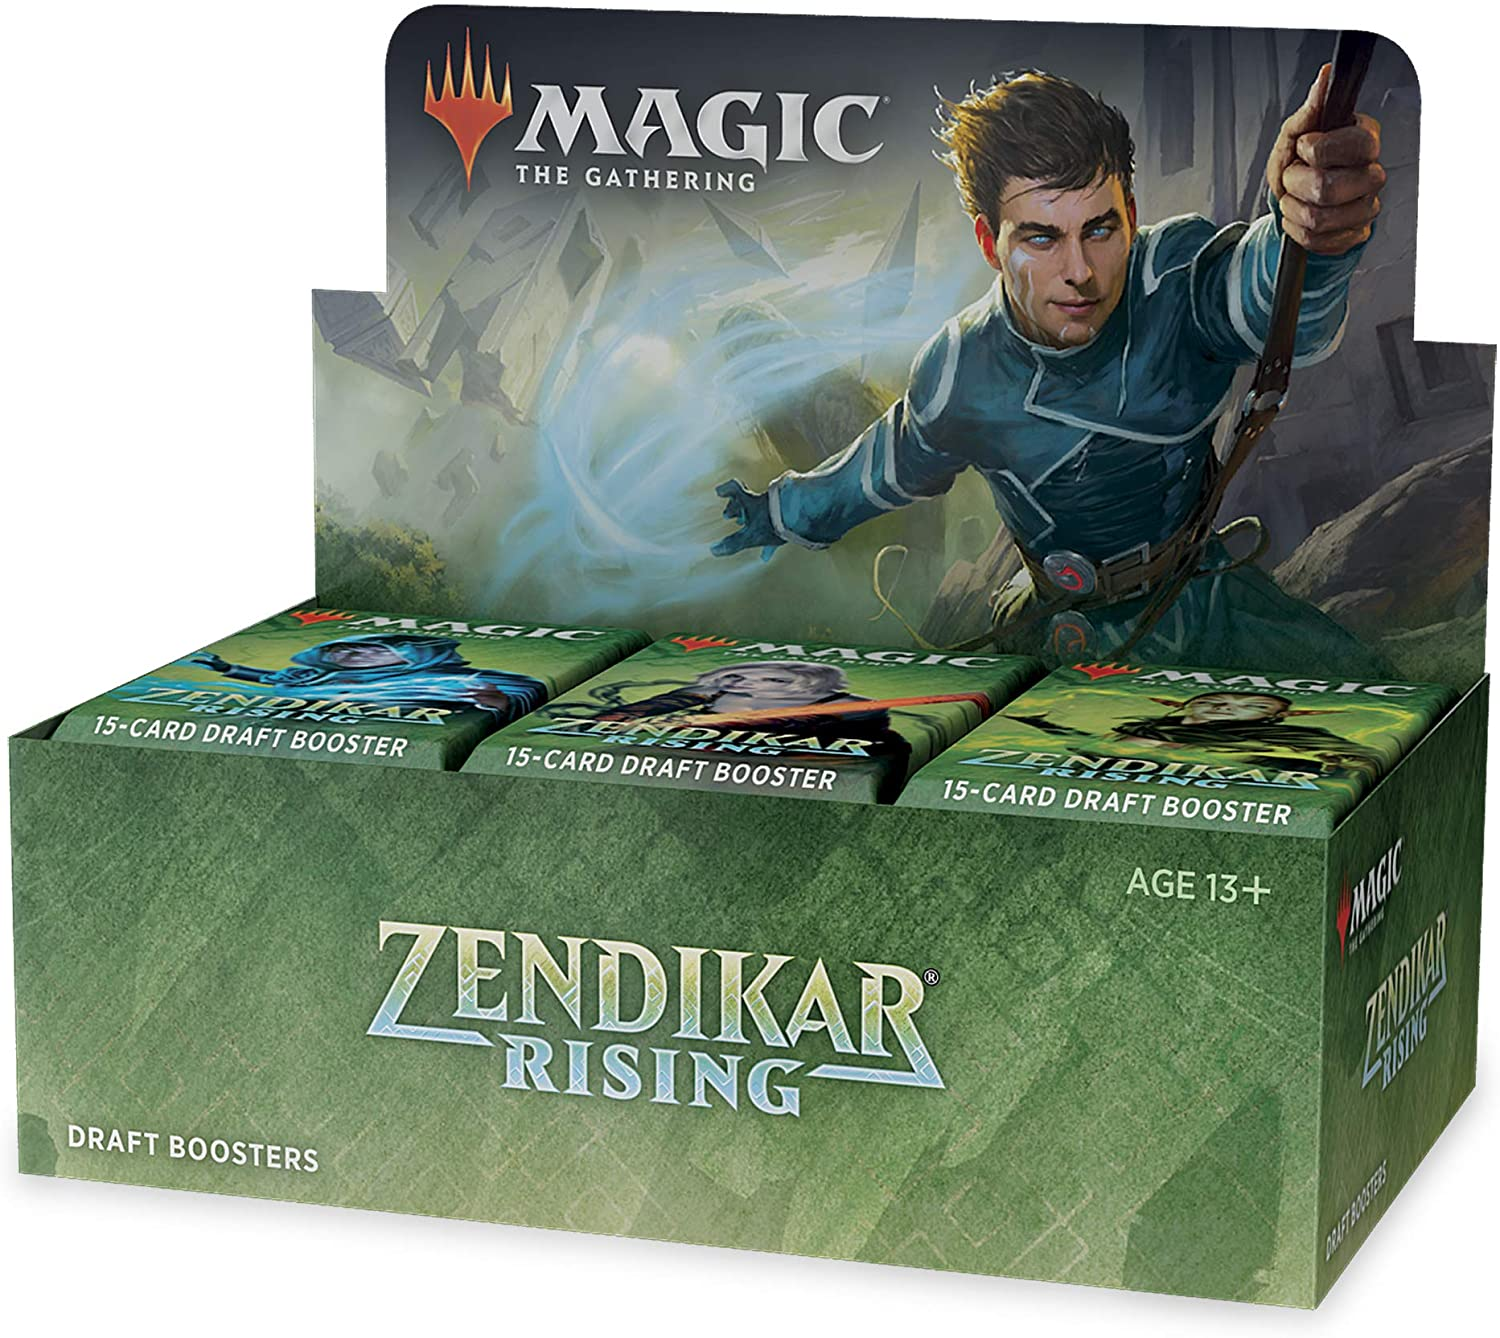 Zendikar Rising Draft Booster Box | Ettin Games